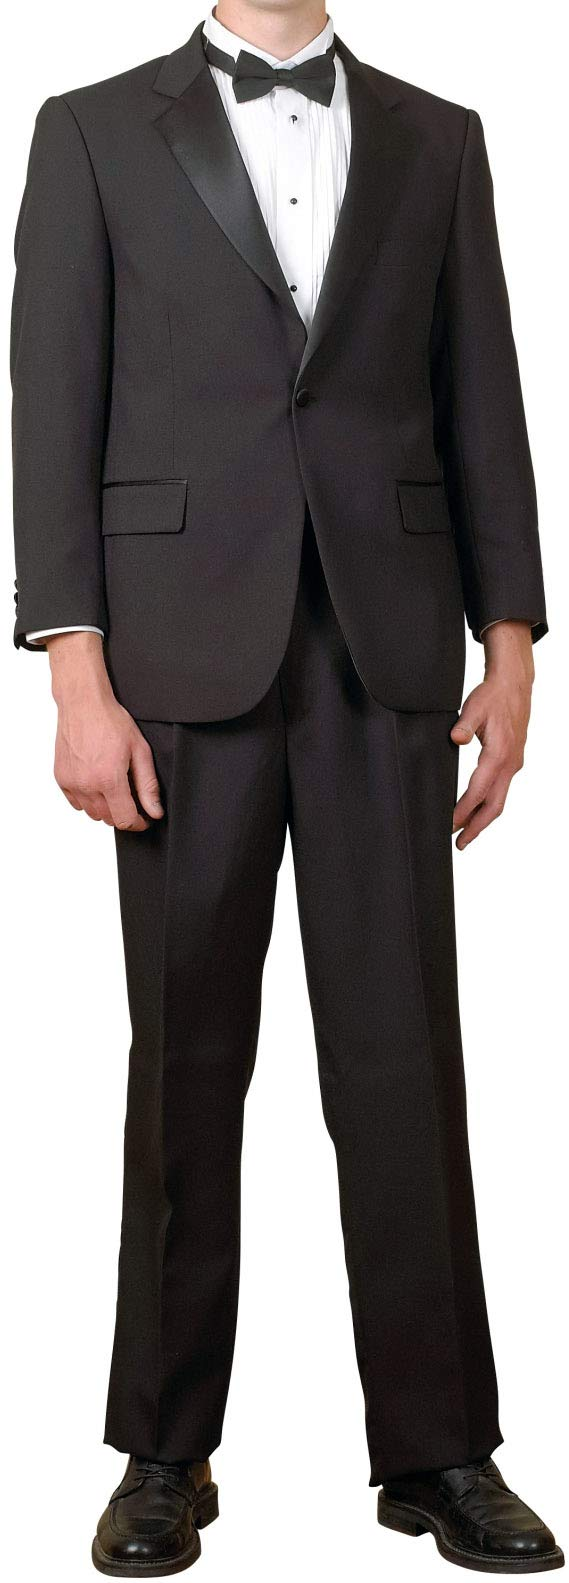 Broadway Tuxmakers Mens 1 Button Black Classic Notch Collar Tuxedo Jacket by (52L) by Broadway Tuxmakers